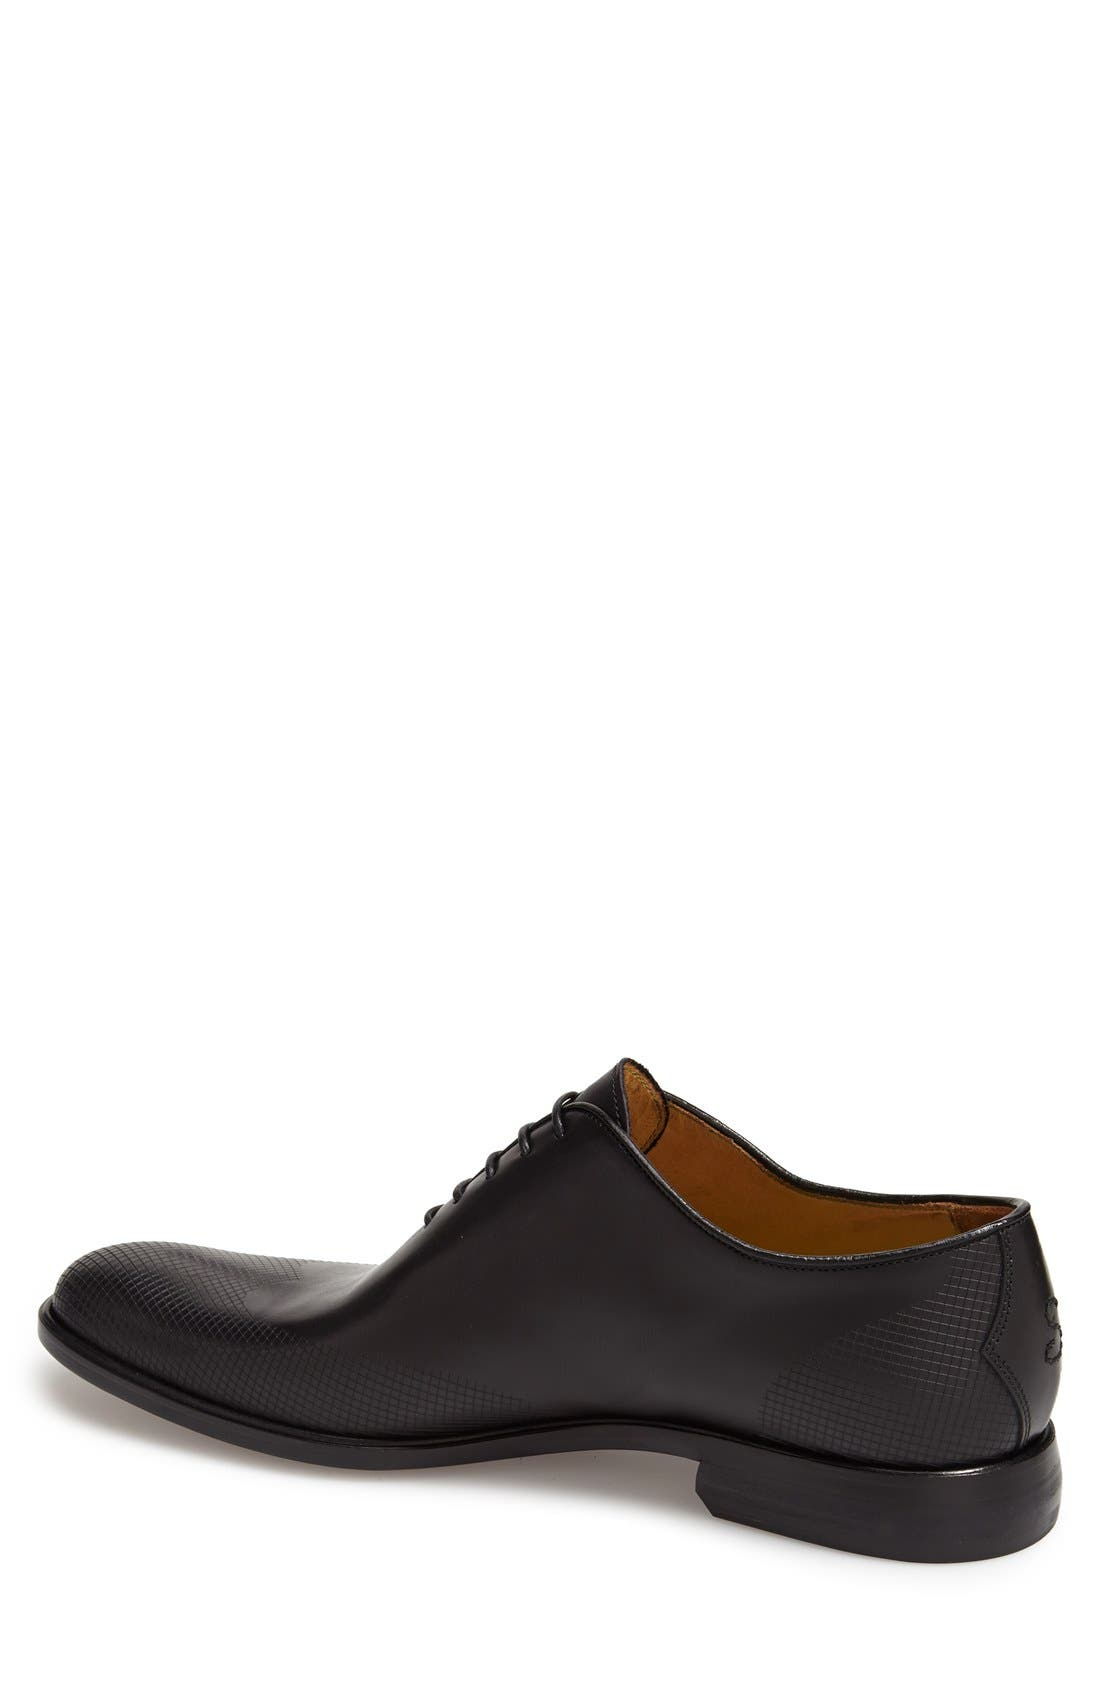 'Colladera' Wholecut Wingtip,                             Alternate thumbnail 3, color,                             001